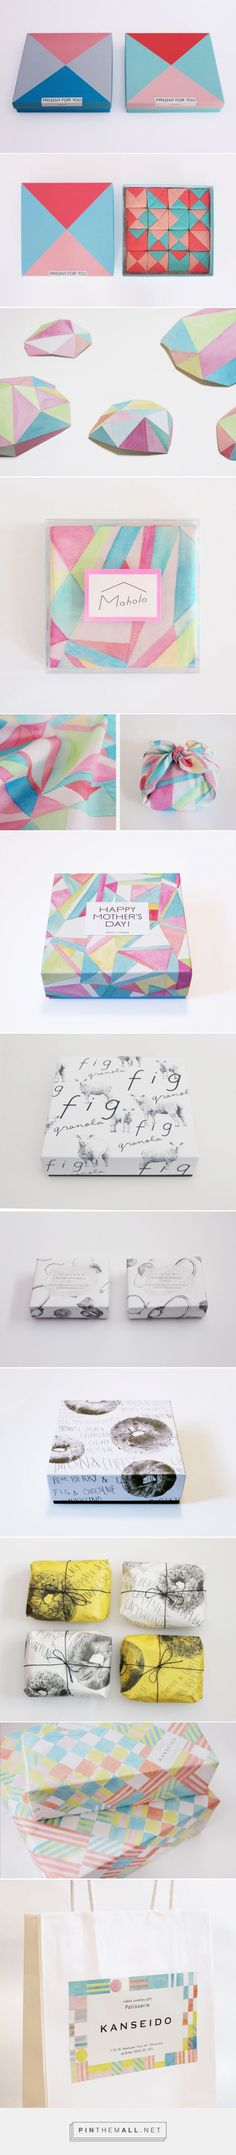 WORKS - yuka-shiramoto curated by Packaging Diva PD. A beautiful collection of packaging and wrapping.